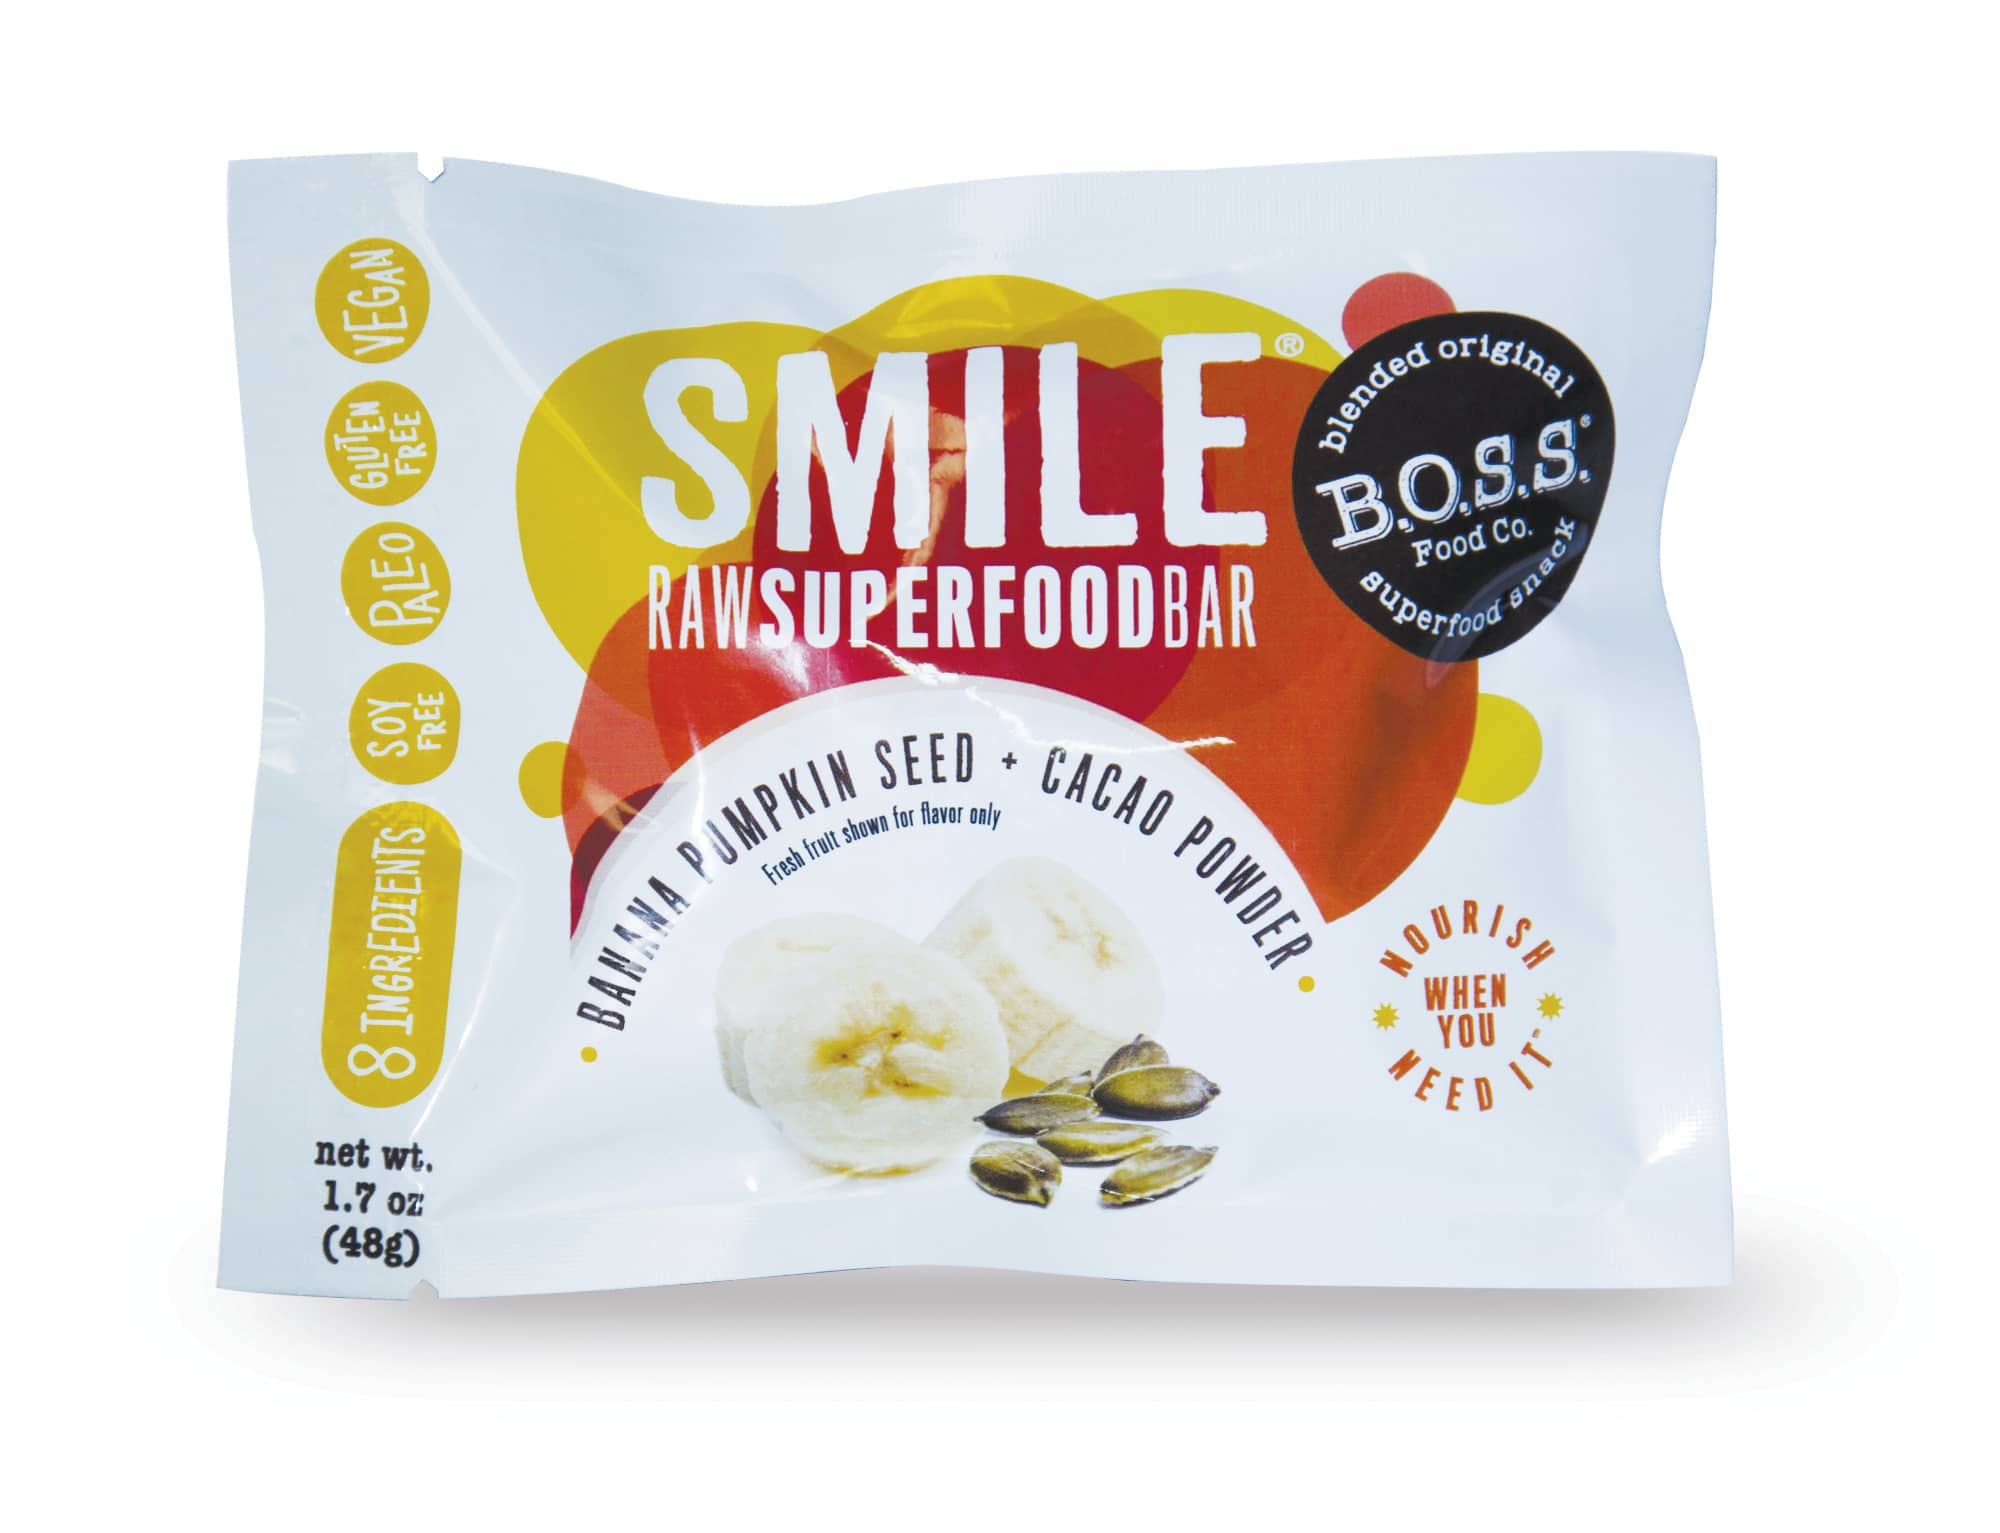 B.O.S.S. Food Co. Expands Distribution